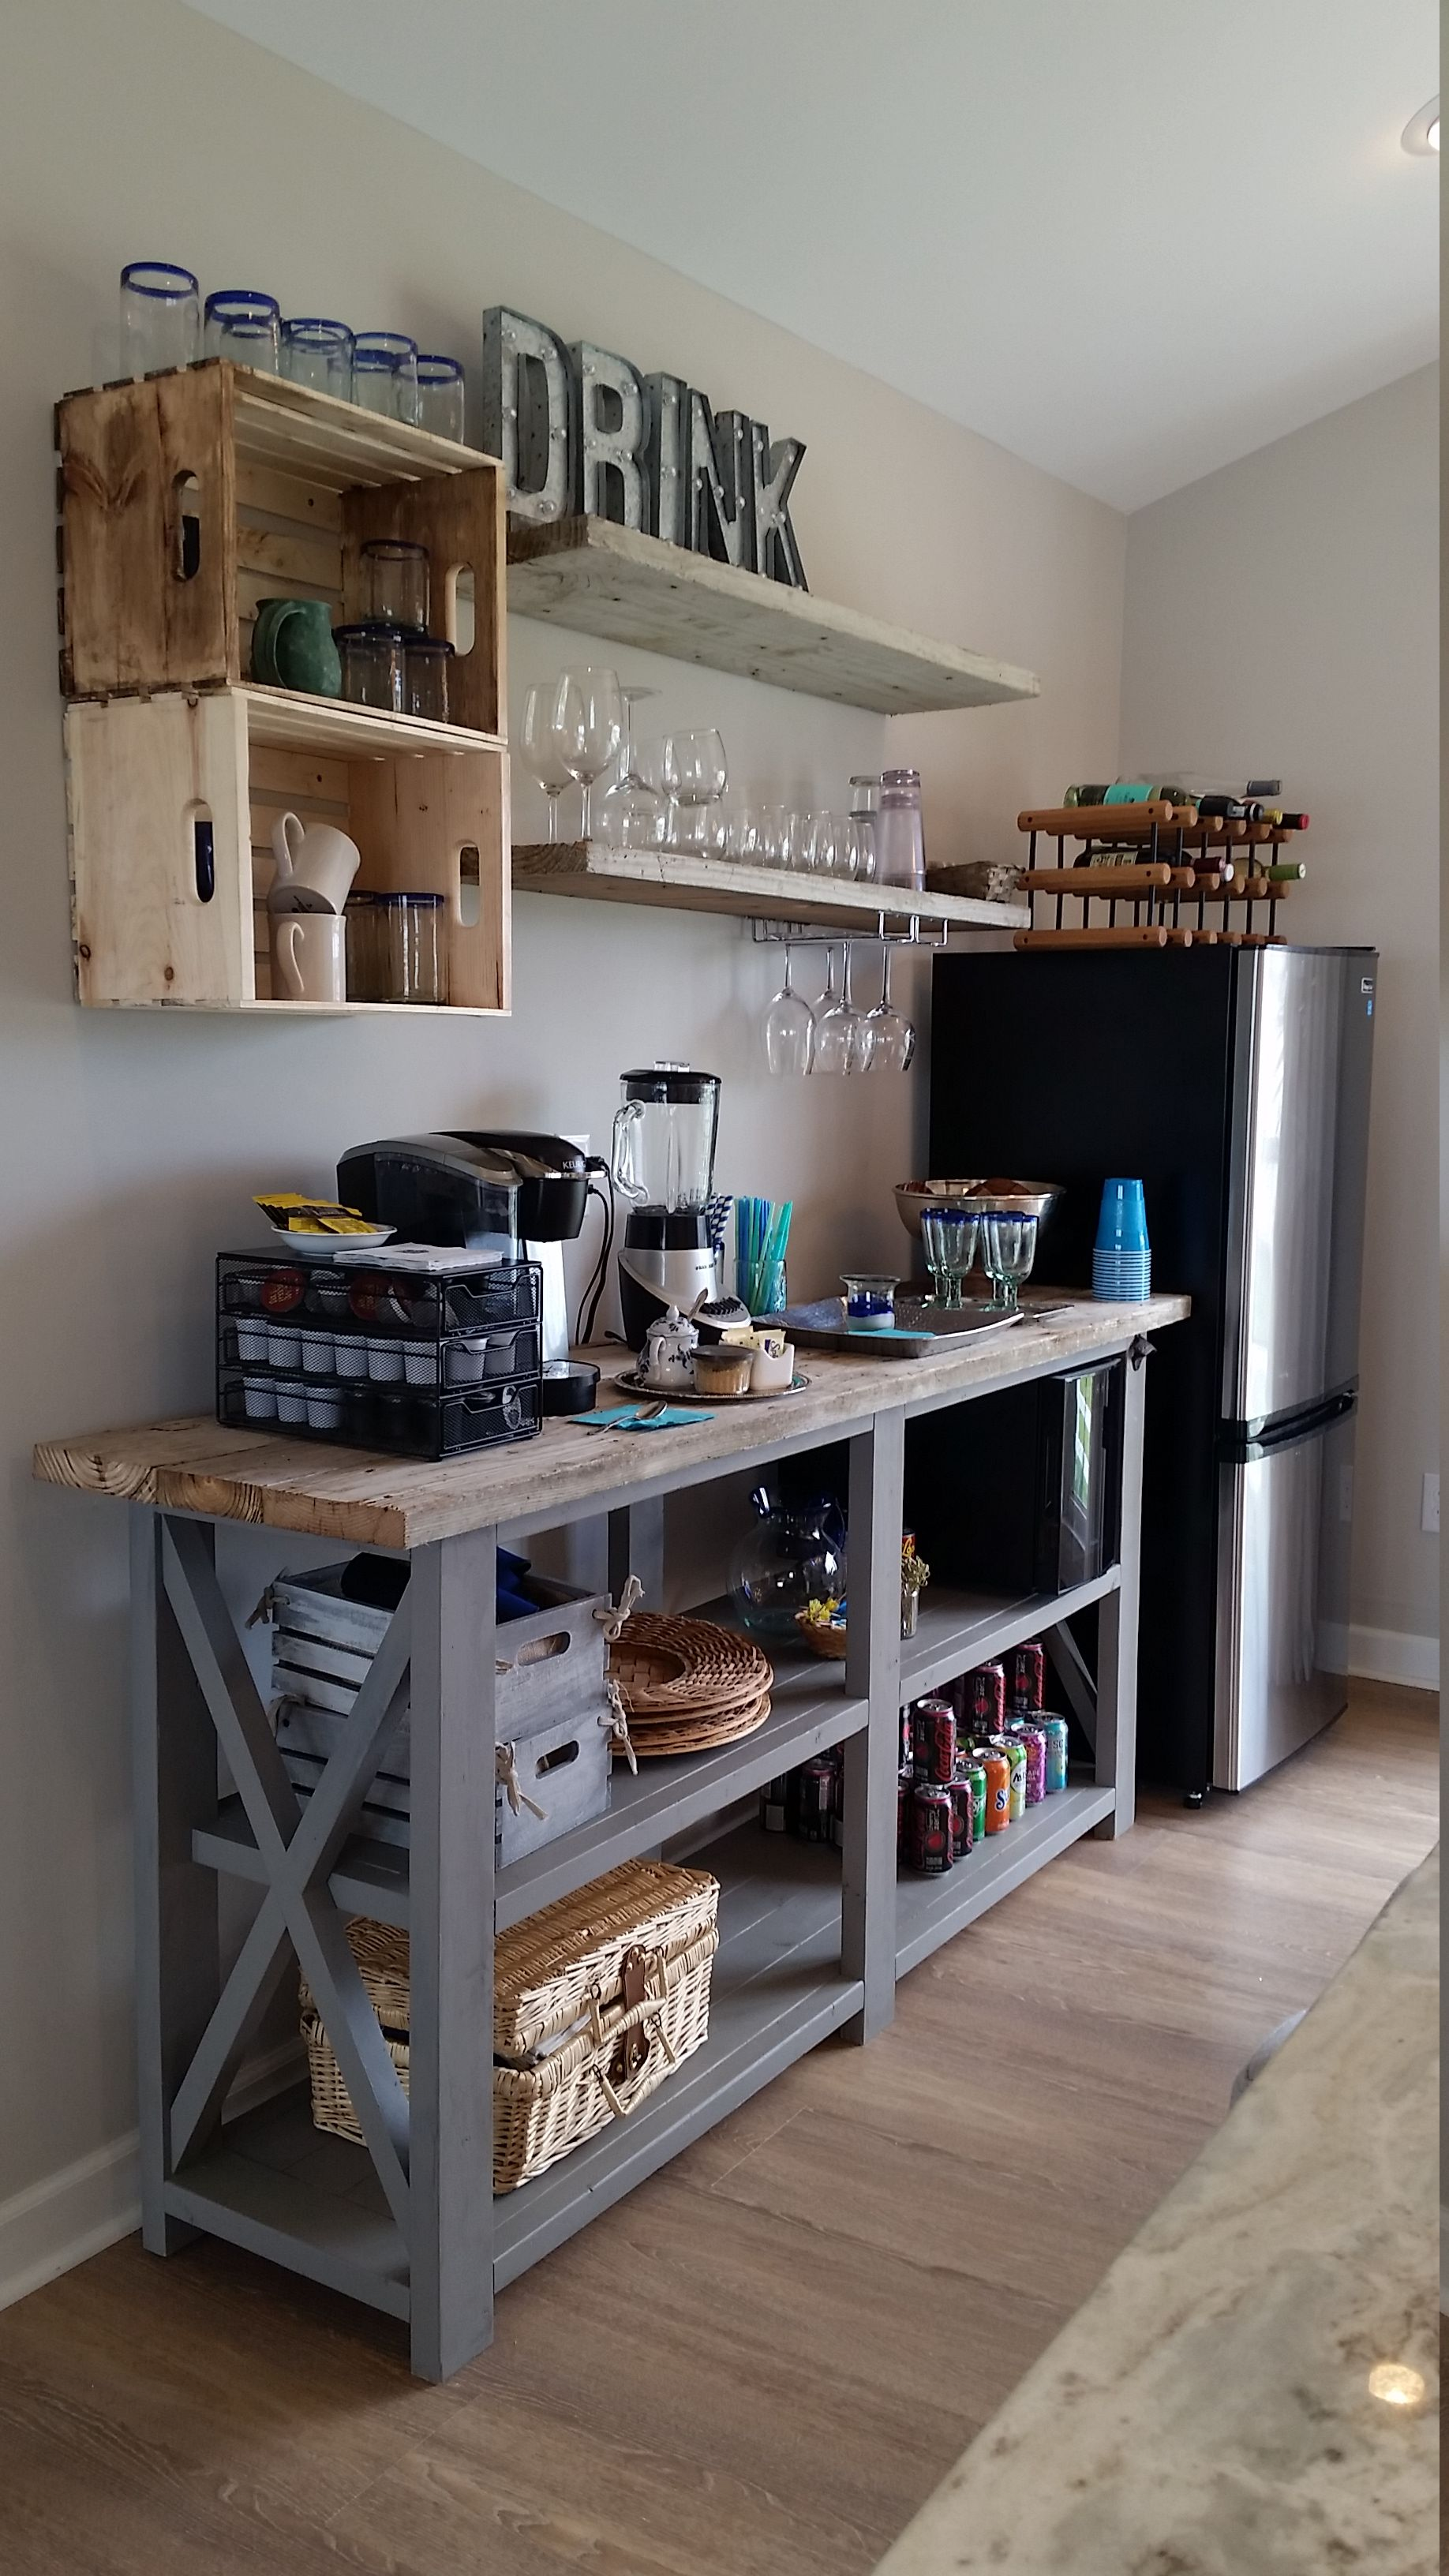 Simple diy kitchenette rustic x beach beverage center do it simple diy kitchenette rustic x beach beverage center do it yourself home projects from ana white solutioingenieria Choice Image